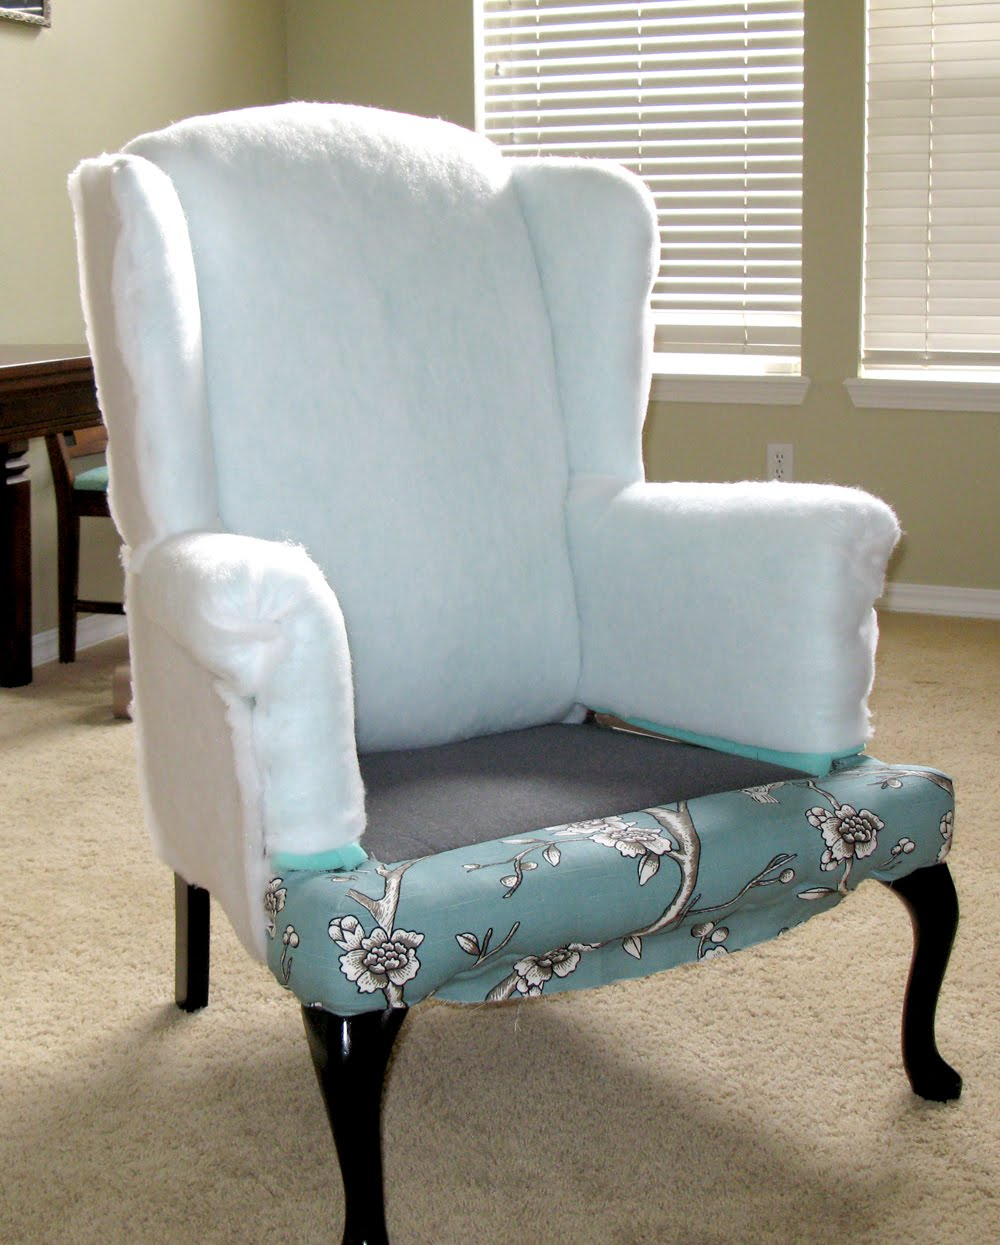 Reupholster wingback chair - Reupholster Wingback Chair 6